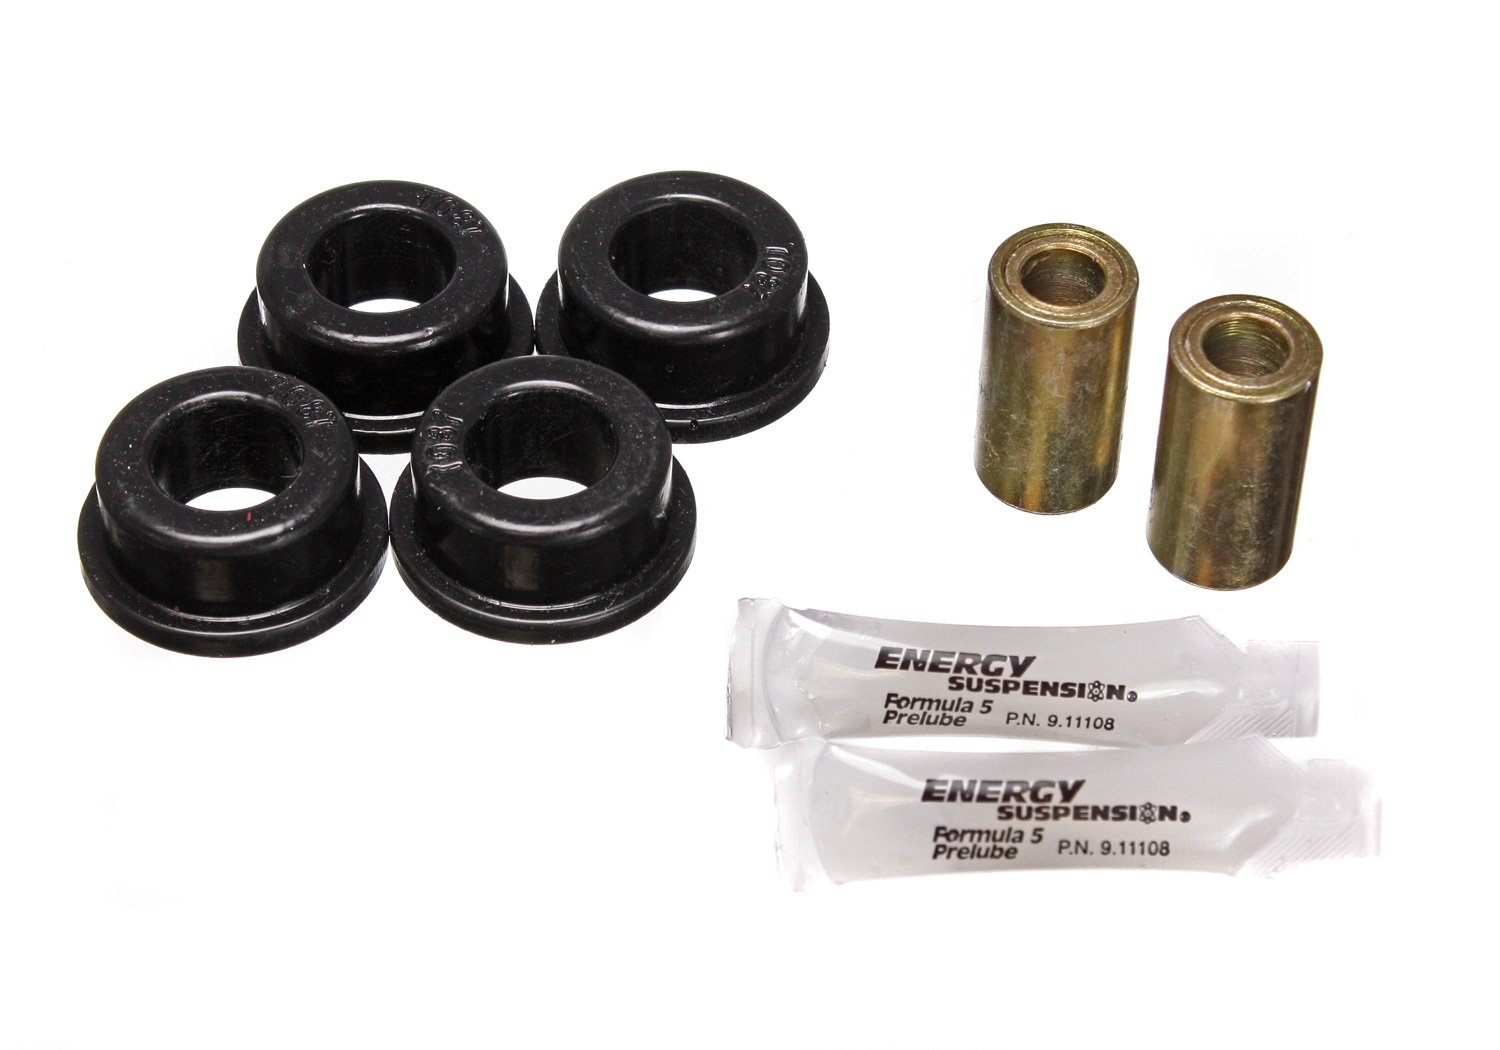 Energy Suspension 2.7103G Rear Track Arm Bushing Set